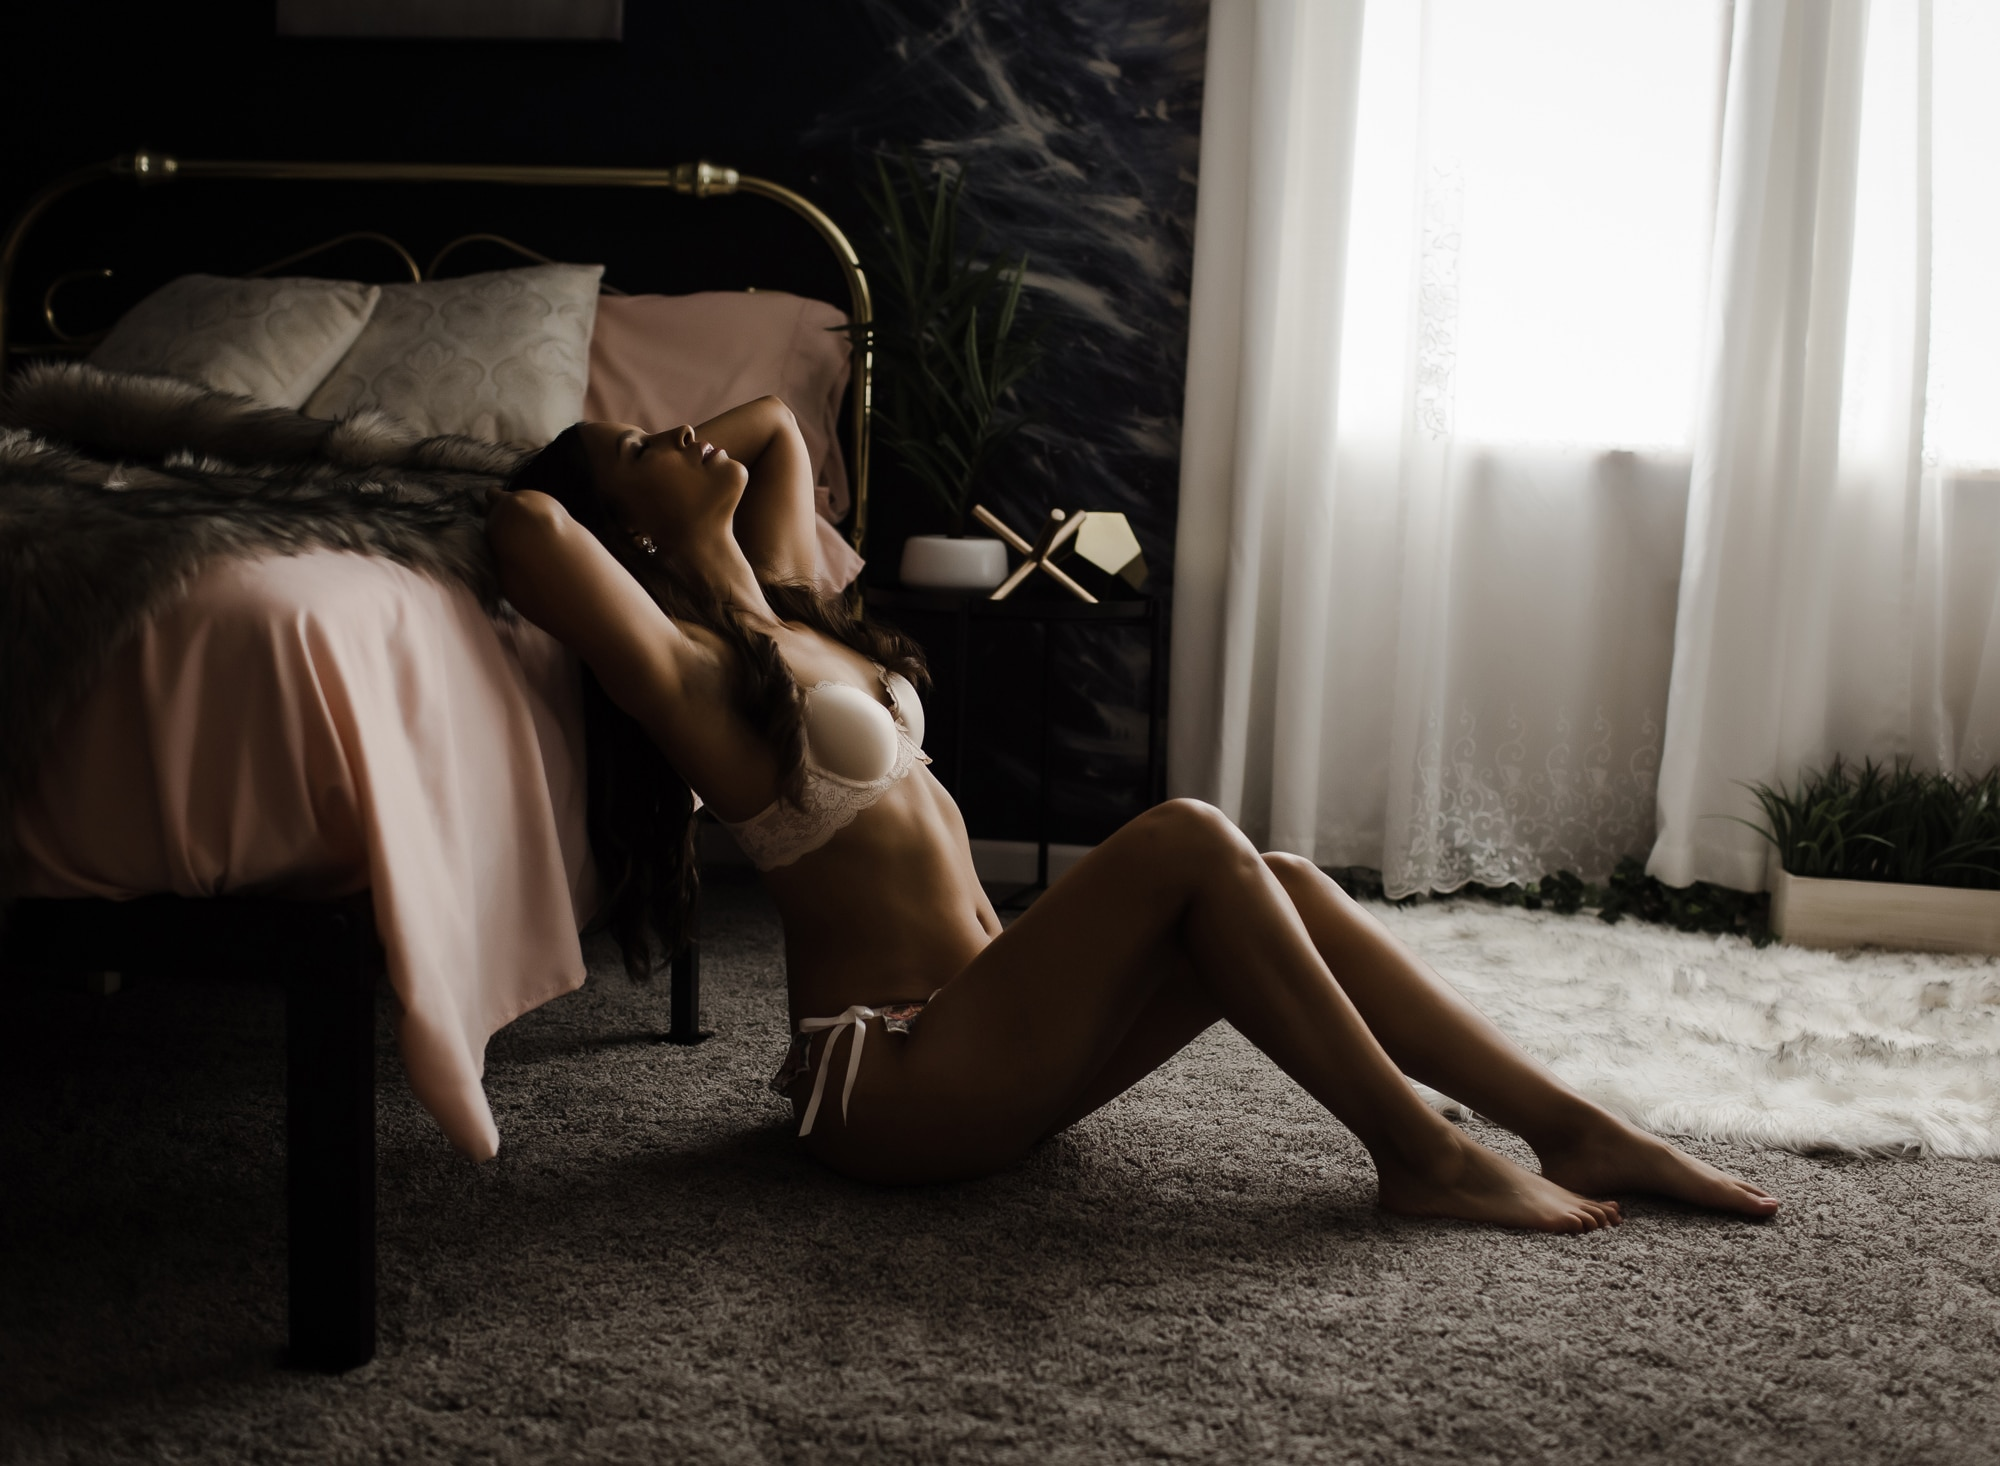 woman-sitting-on-floor-arching-back-over-bed-with-pink-sheets